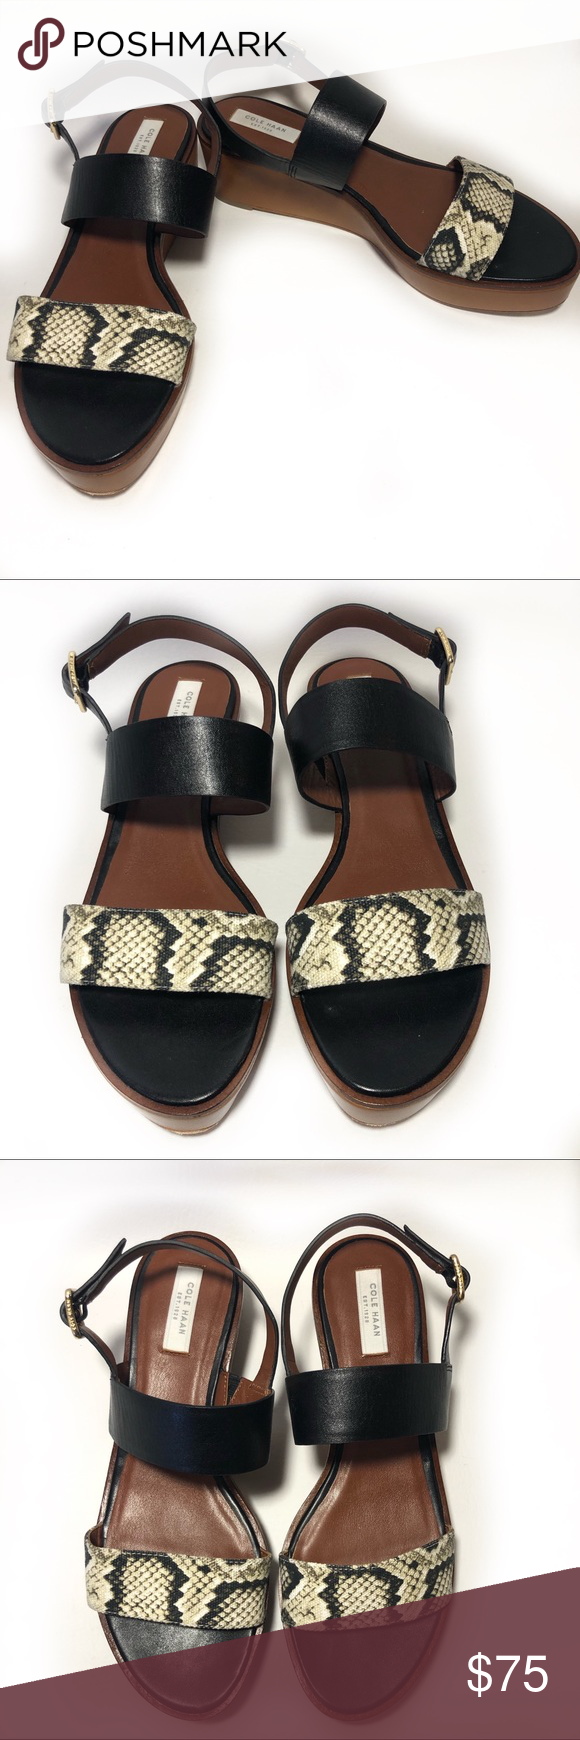 f273564ed56 Spotted while shopping on Poshmark  Cole Haan Cambon snakeprint platform  sandal EUC!  poshmark  fashion  shopping  style  Cole Haan  Shoes